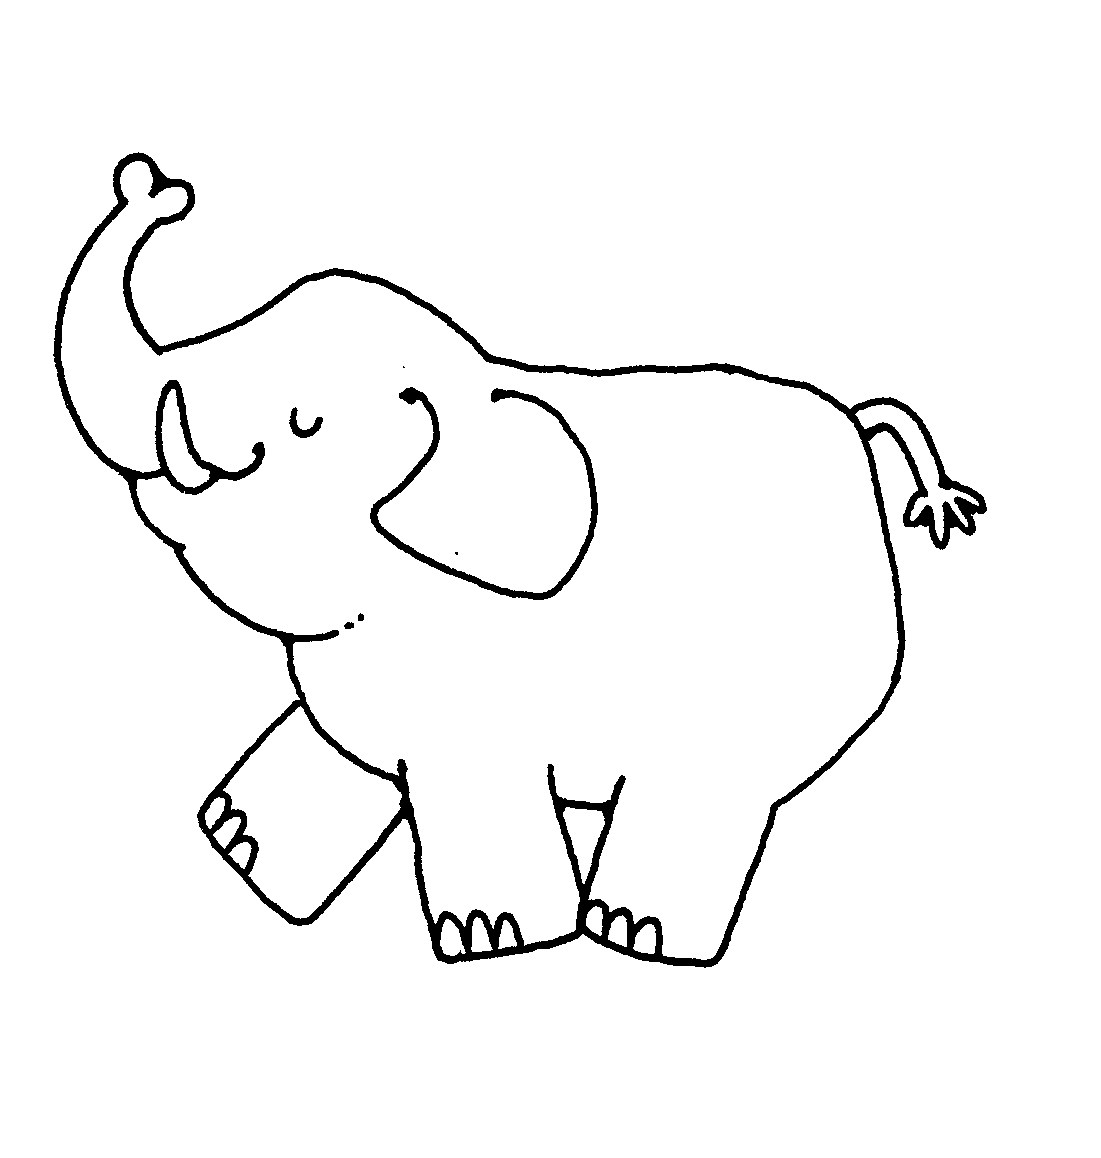 Black and white elephant clipart 3 » Clipart Portal.